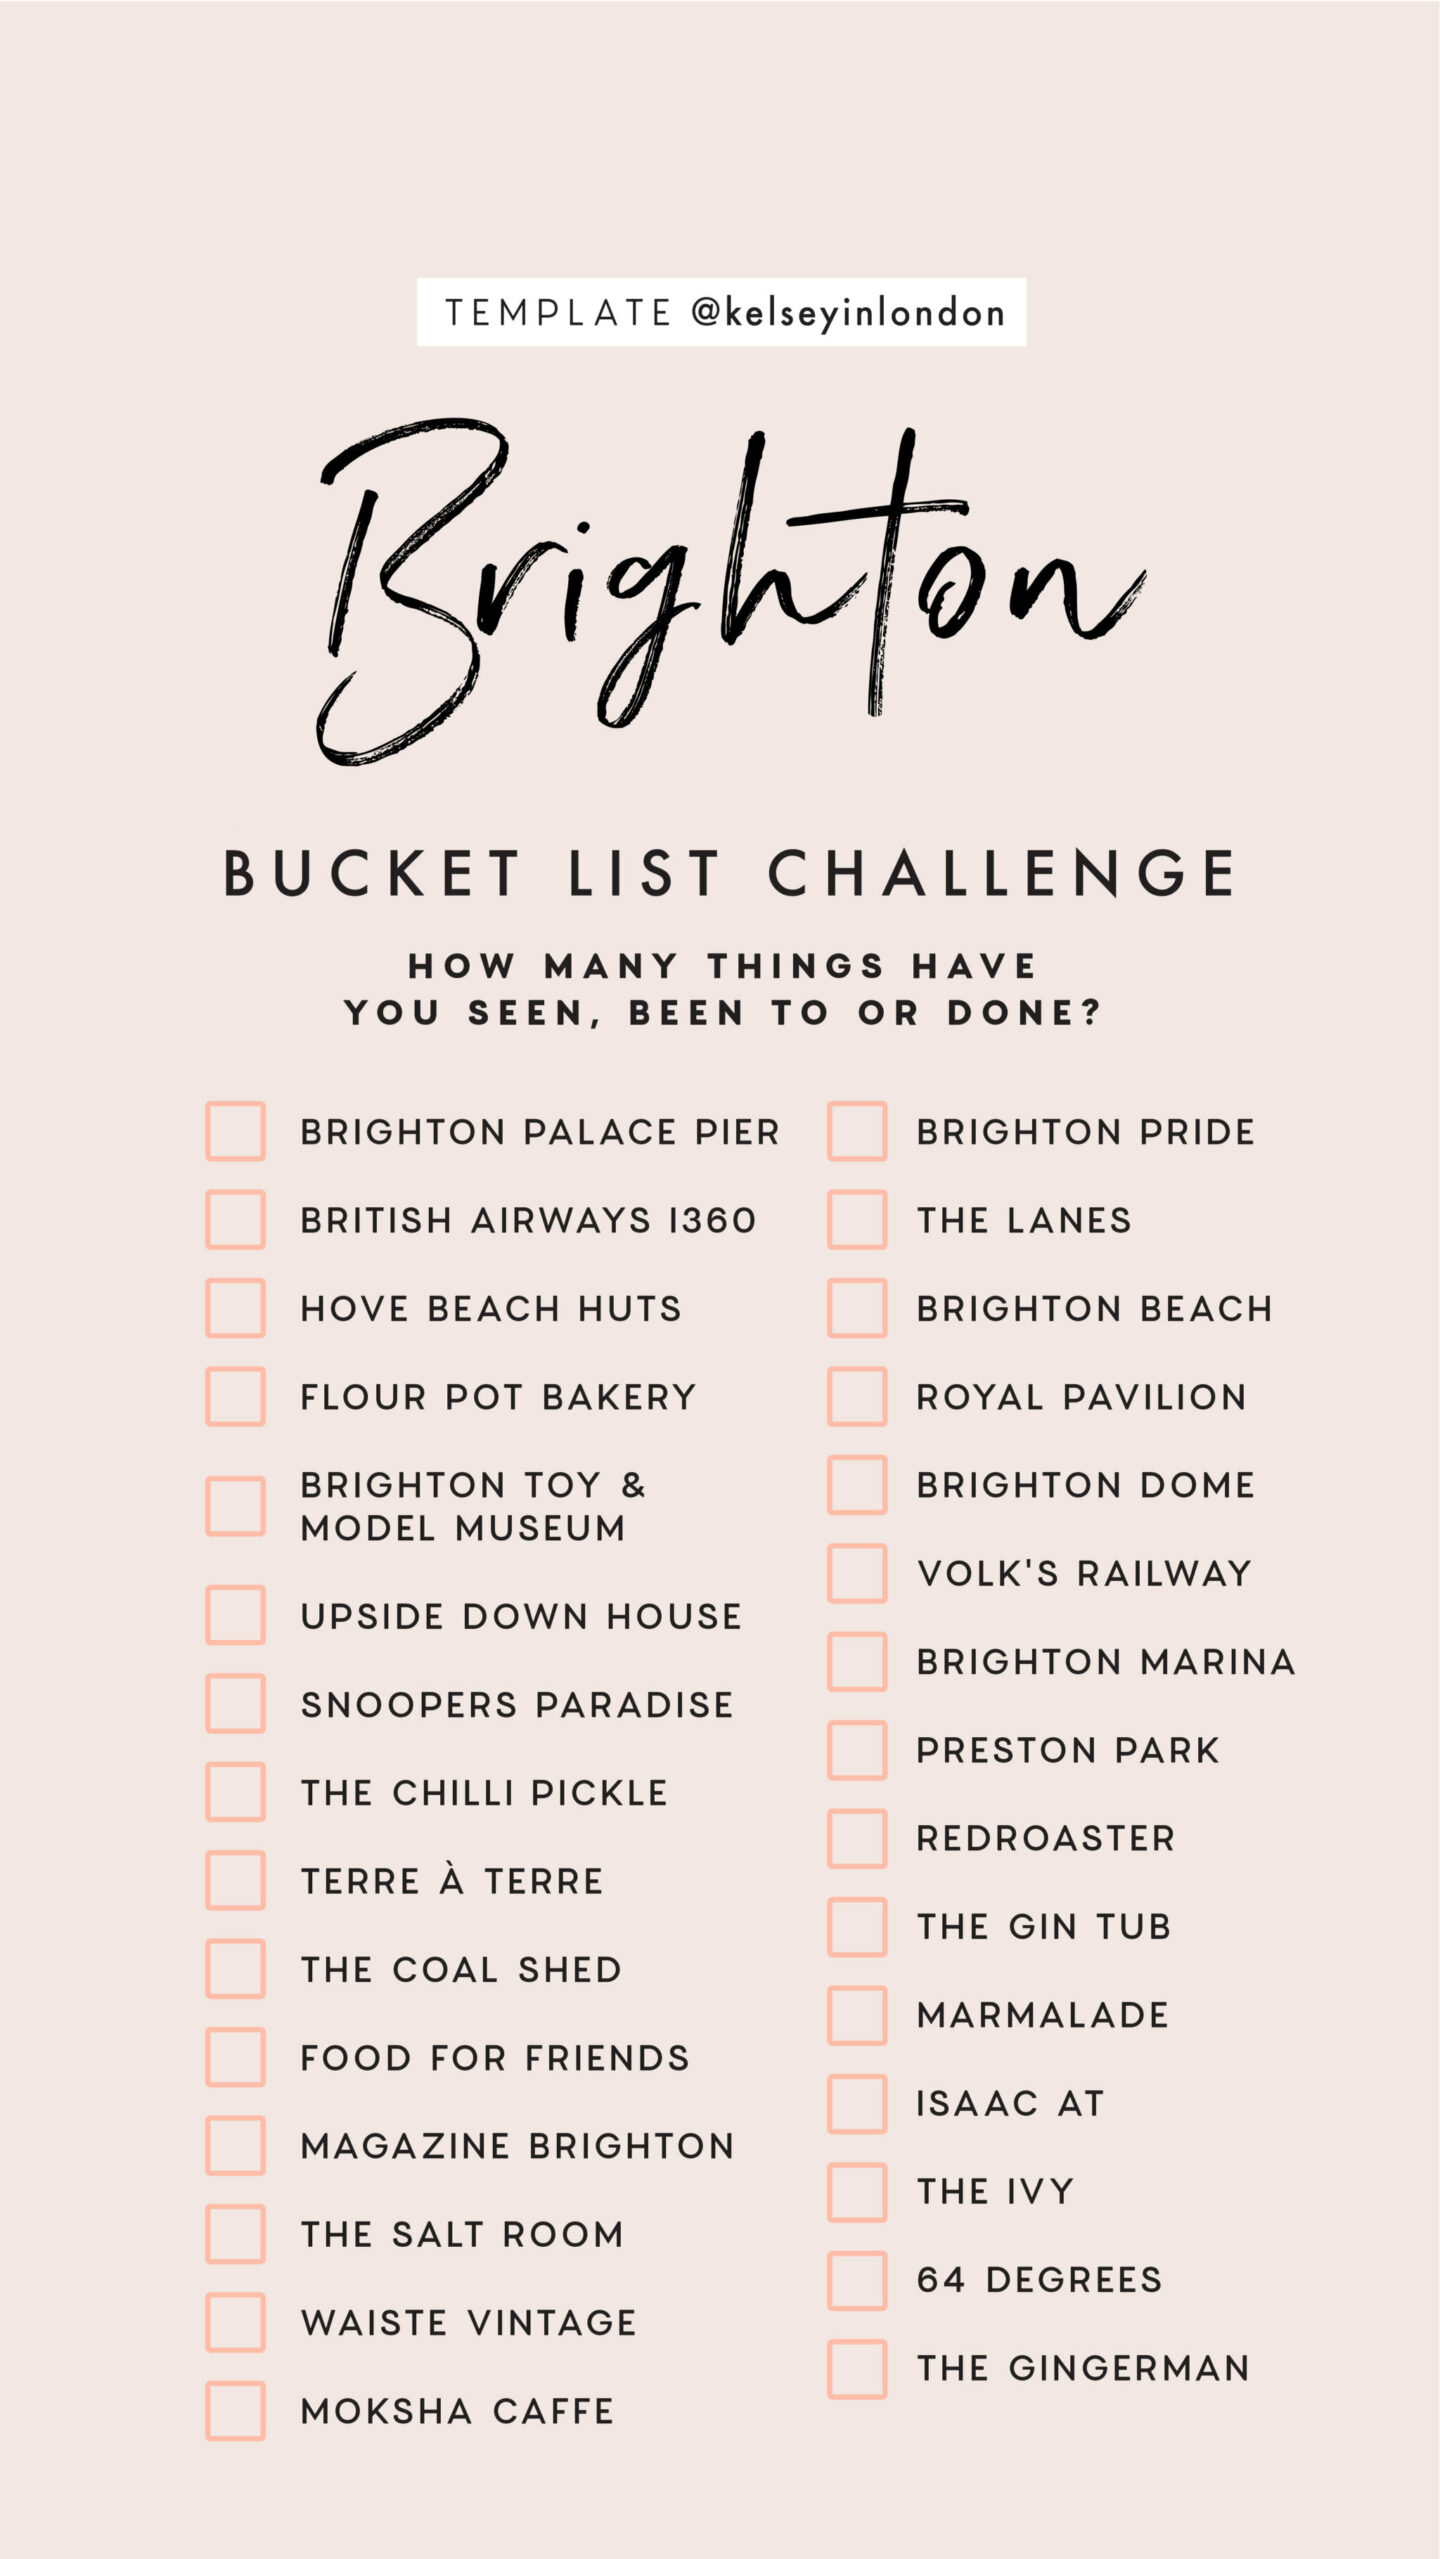 Top things to do in brighton Bucket list Instagram Story Template kelseyinlondon Kelsey Heinrichs brighton places travel guide